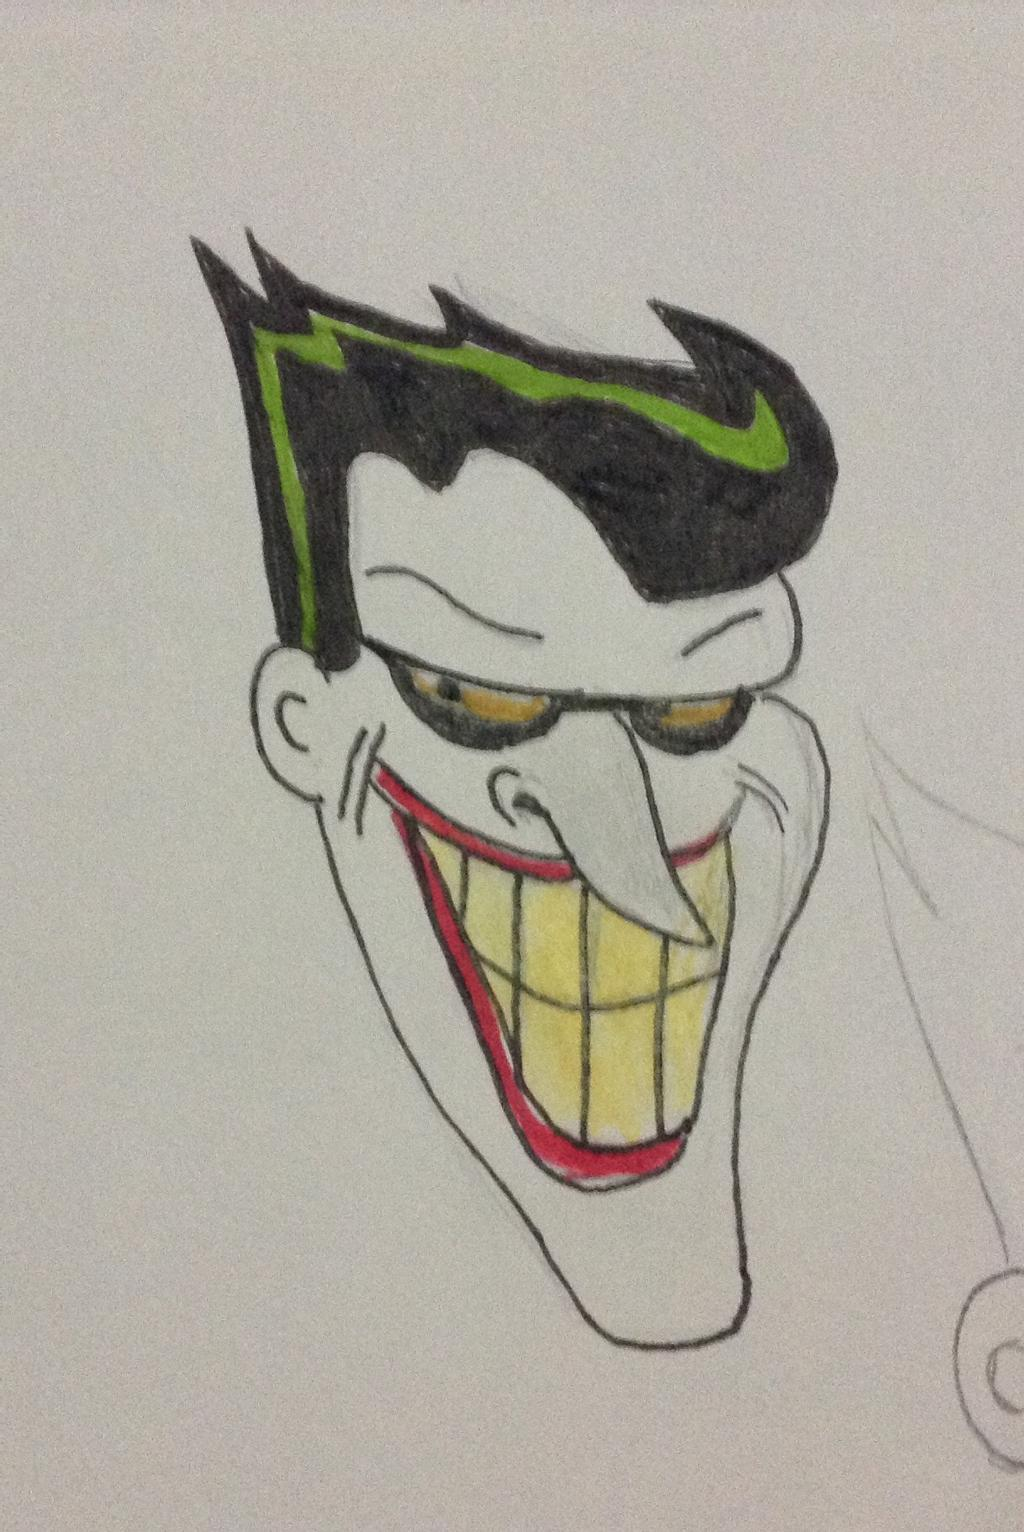 mark_hamill_joker_in_color_by_jokerfan79_dccdqcf-fullview.jpg